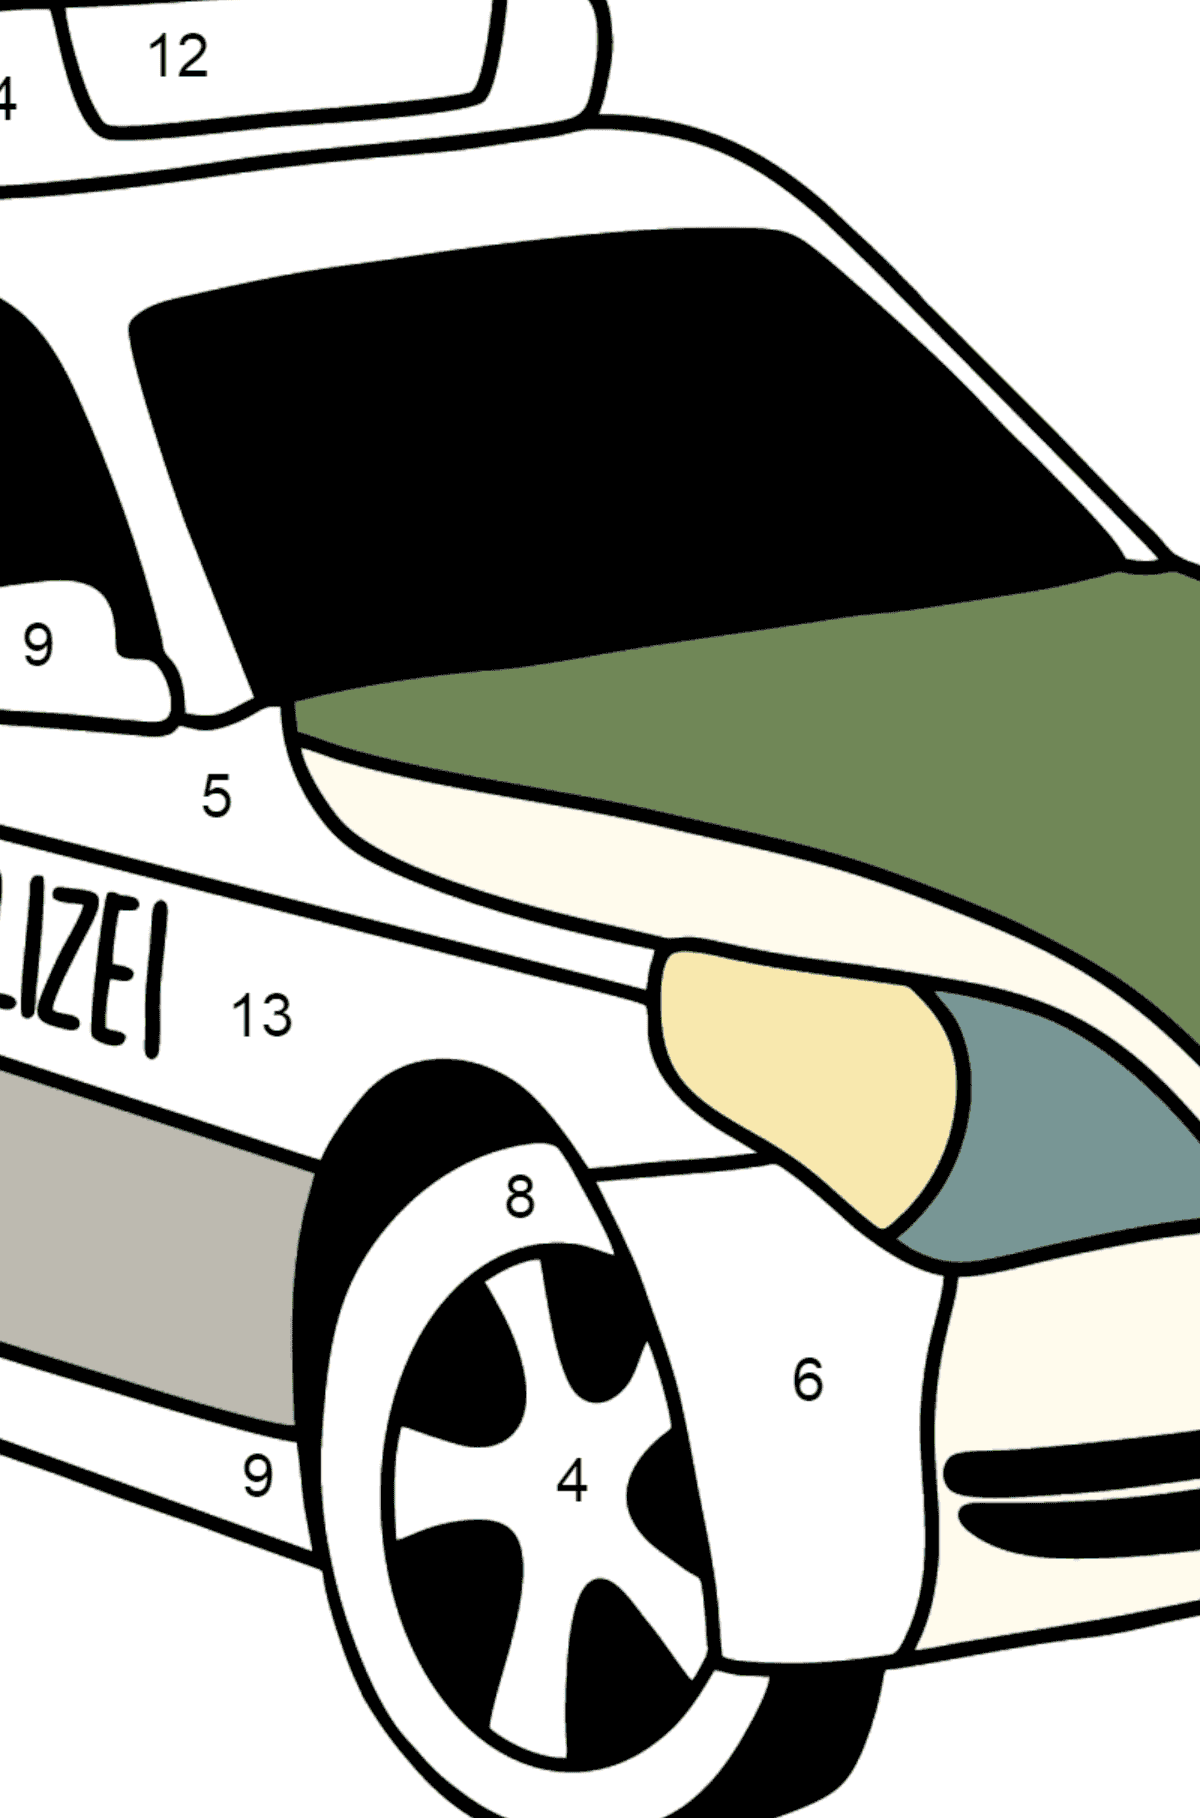 Police Car in Germany coloring page - Coloring by Numbers for Kids